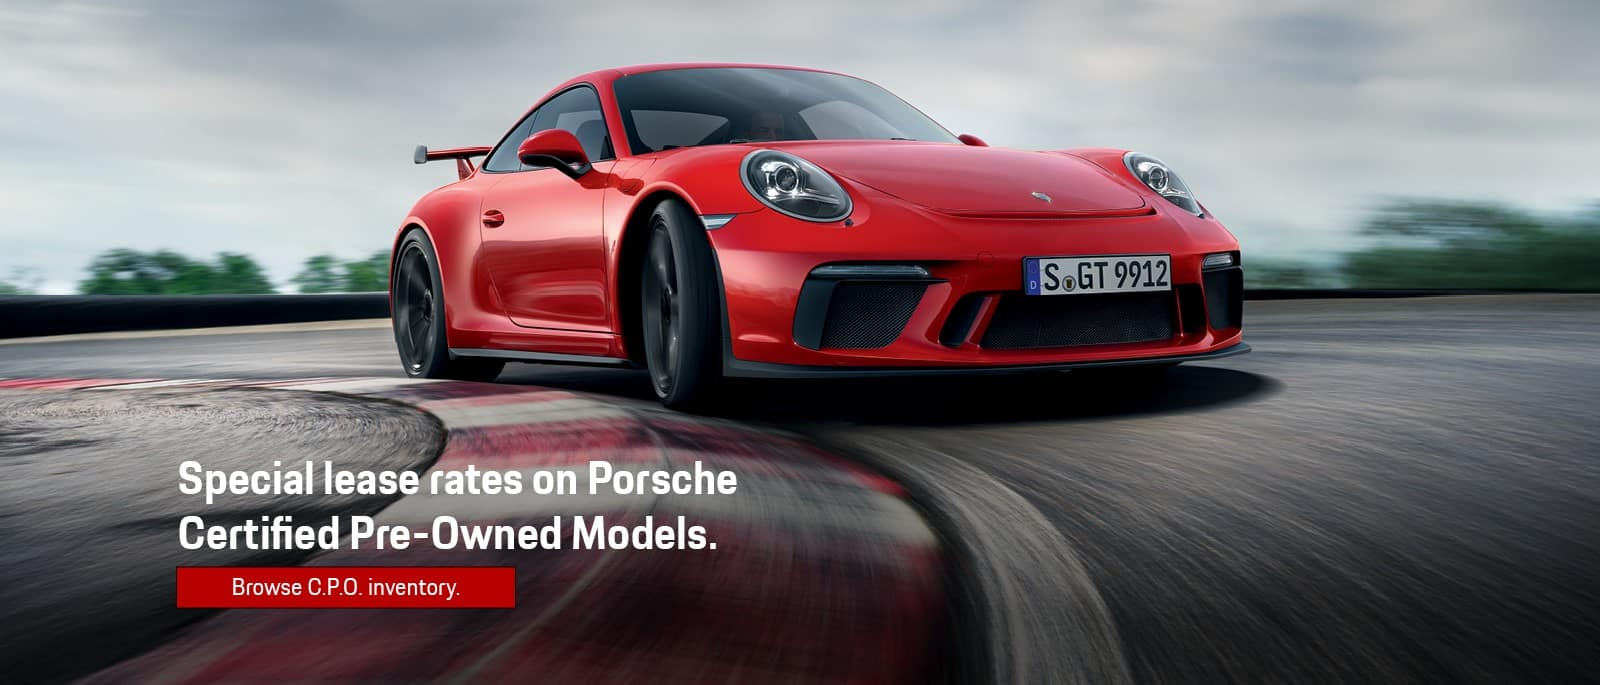 Porsche Certified Pre-Owned Lease Specials